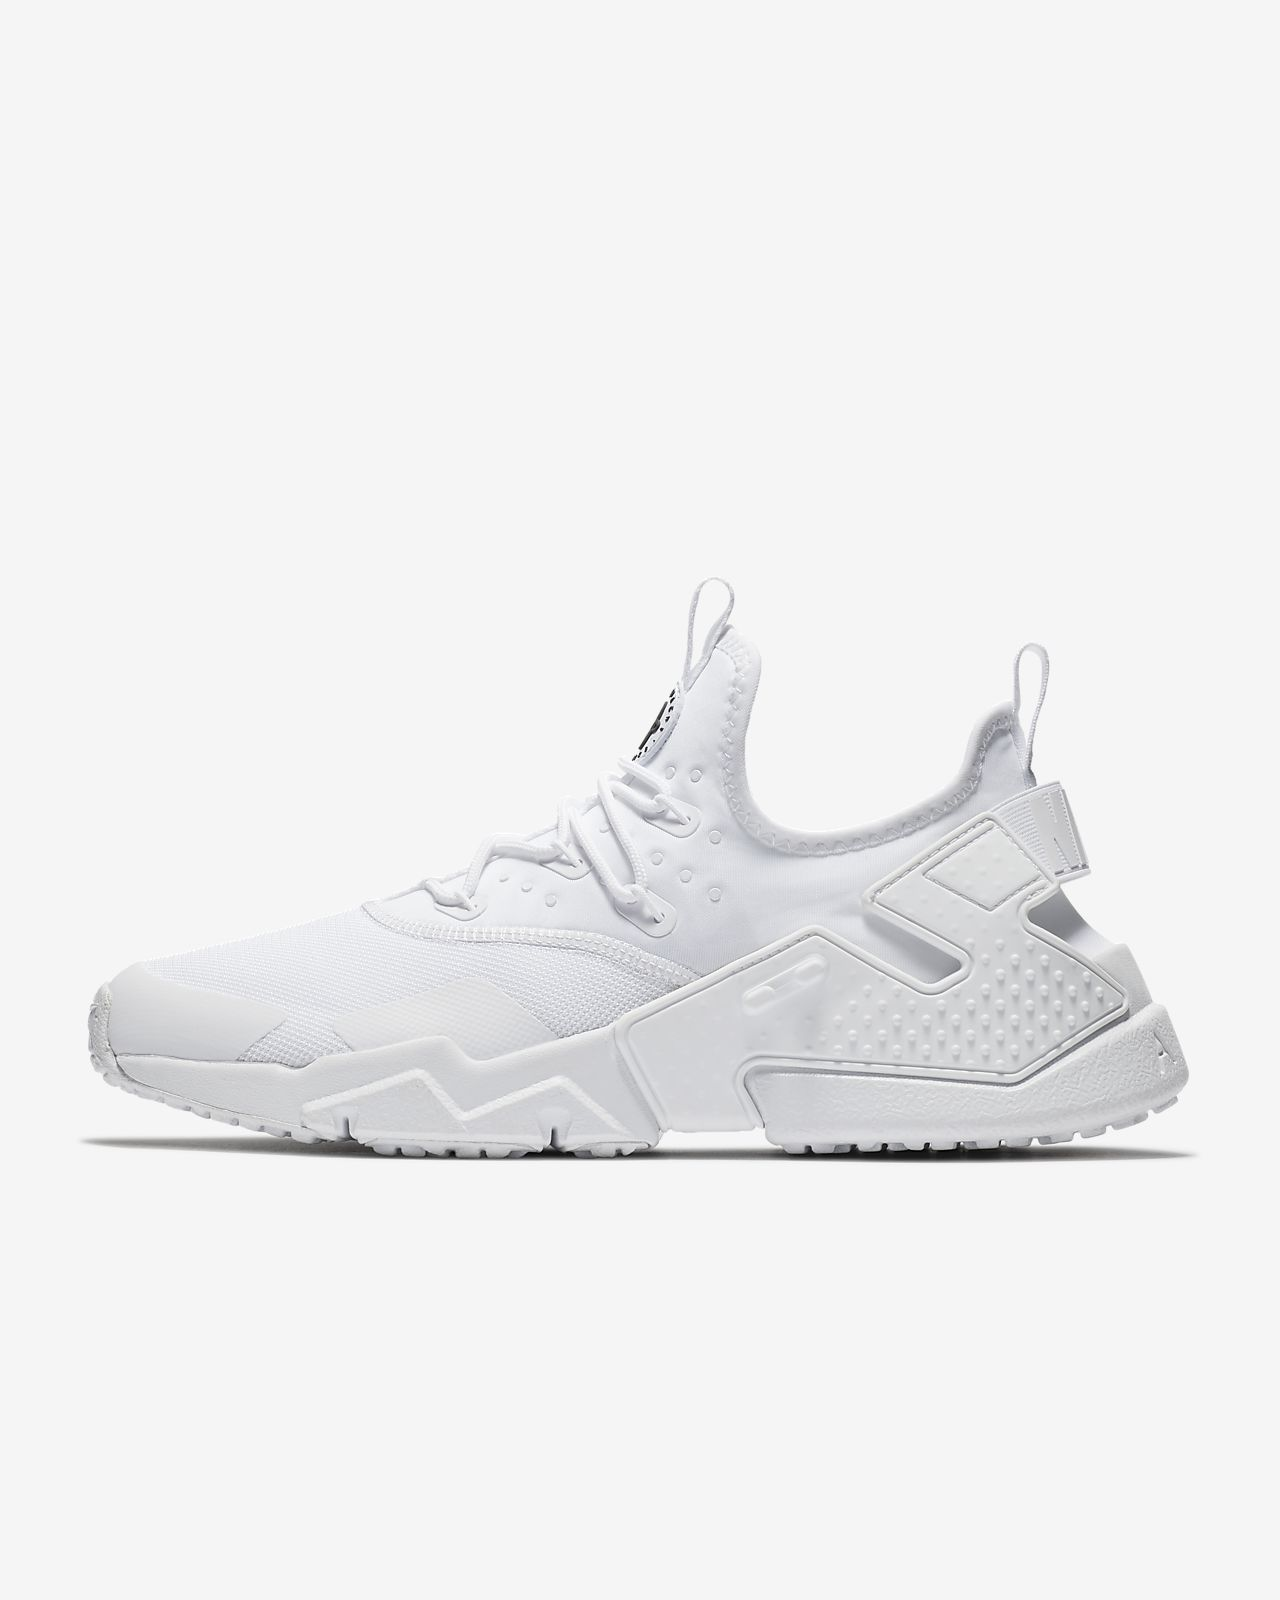 official photos 4b049 83925 ... Nike Air Huarache Drift Men s Shoe